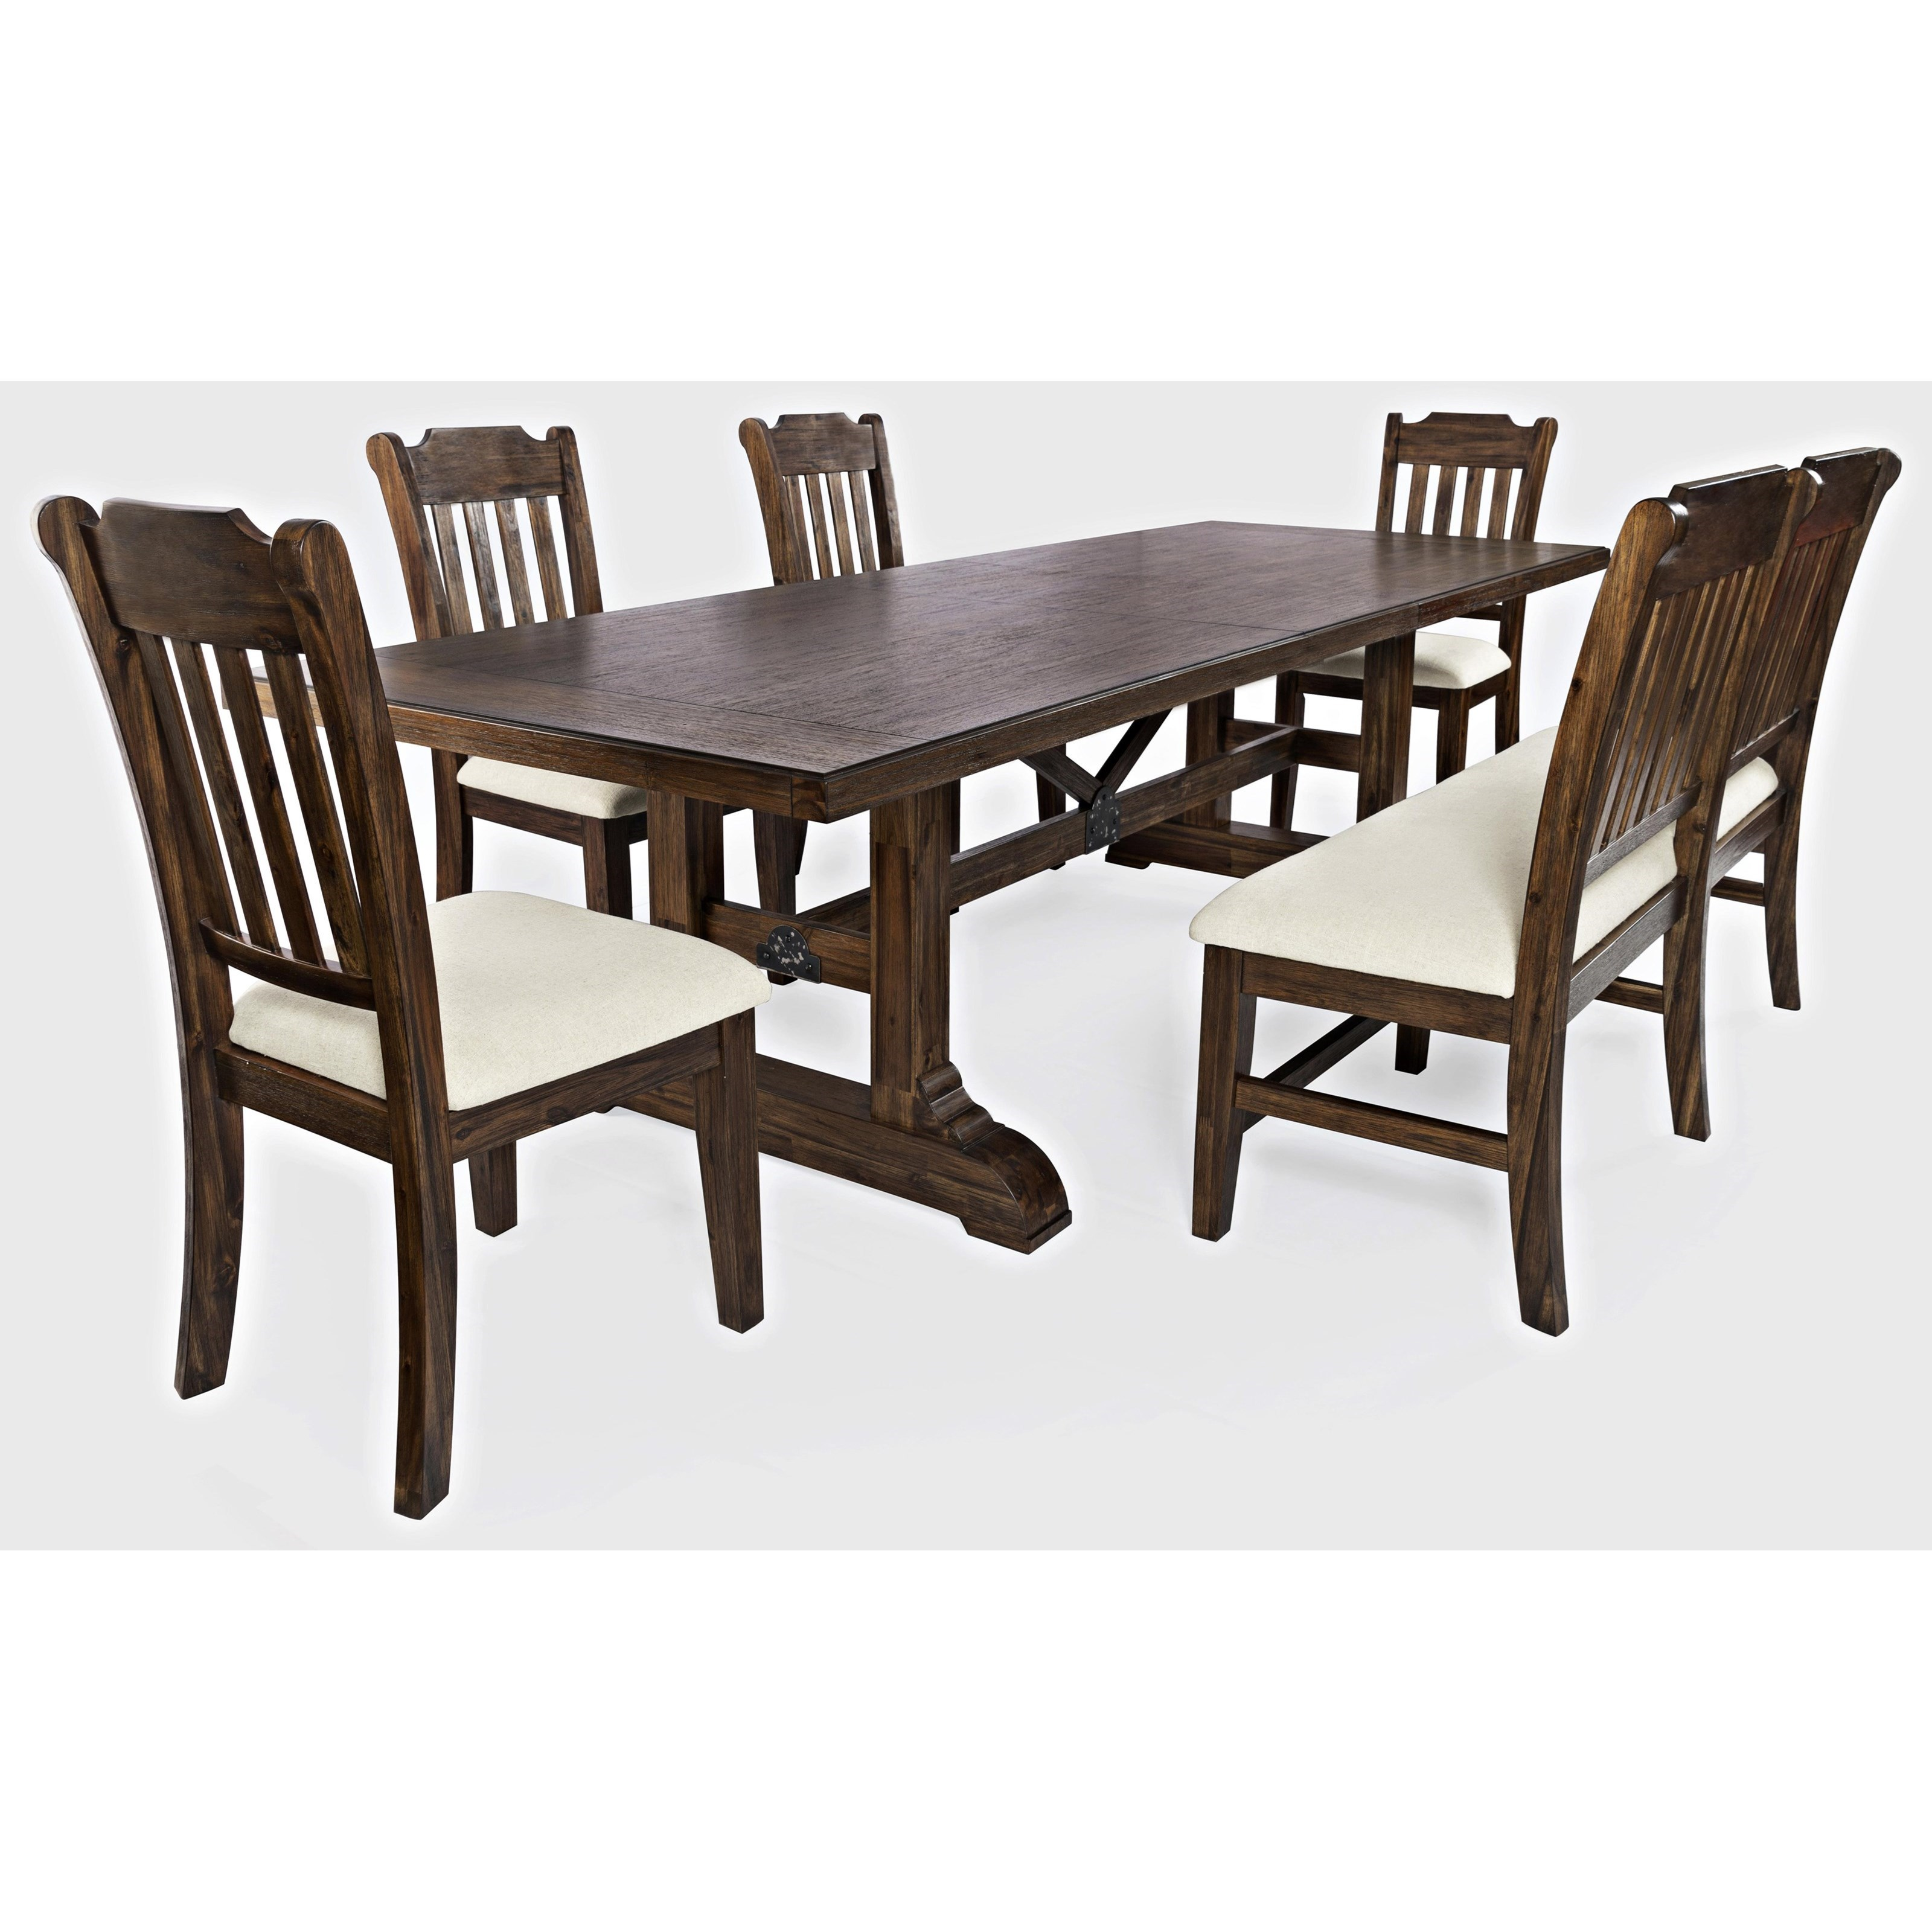 Bakersfield 6-Piece Dining Table and Chair Set by Jofran at Lapeer Furniture & Mattress Center